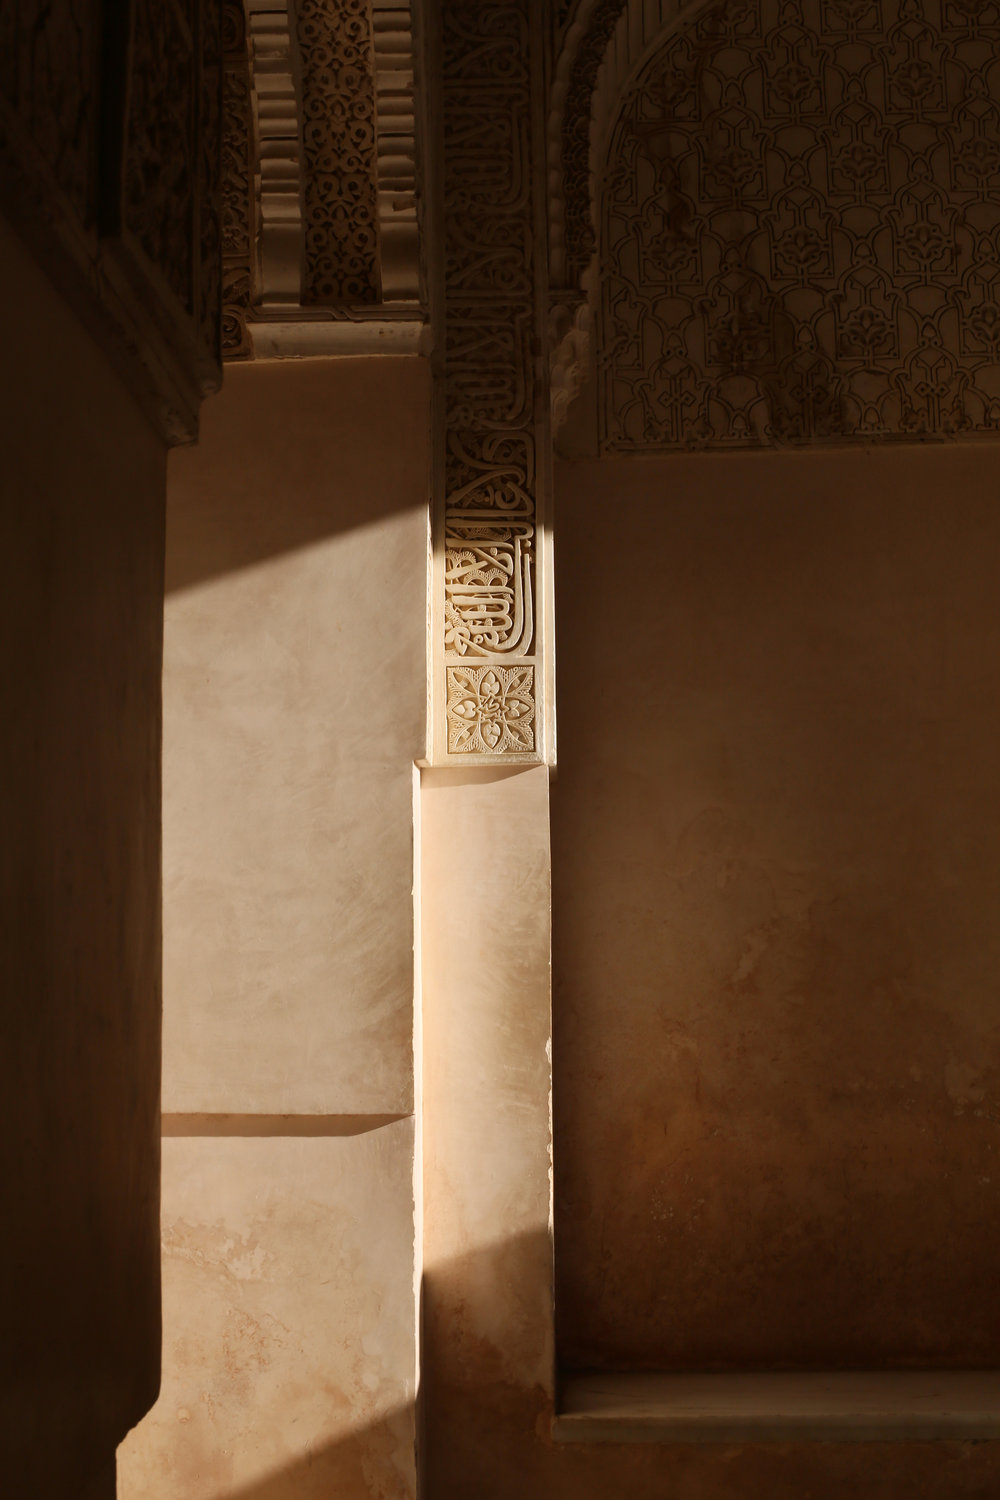 I consciously chose the morning session for the light. Our first sight within the Alhambra was of the Palacio Nazaries, which is the only restricted part of the palace. You can enter only at your ticket time and can spend no longer than 30 minutes walking through. It is by far the most decorated of all the spaces.